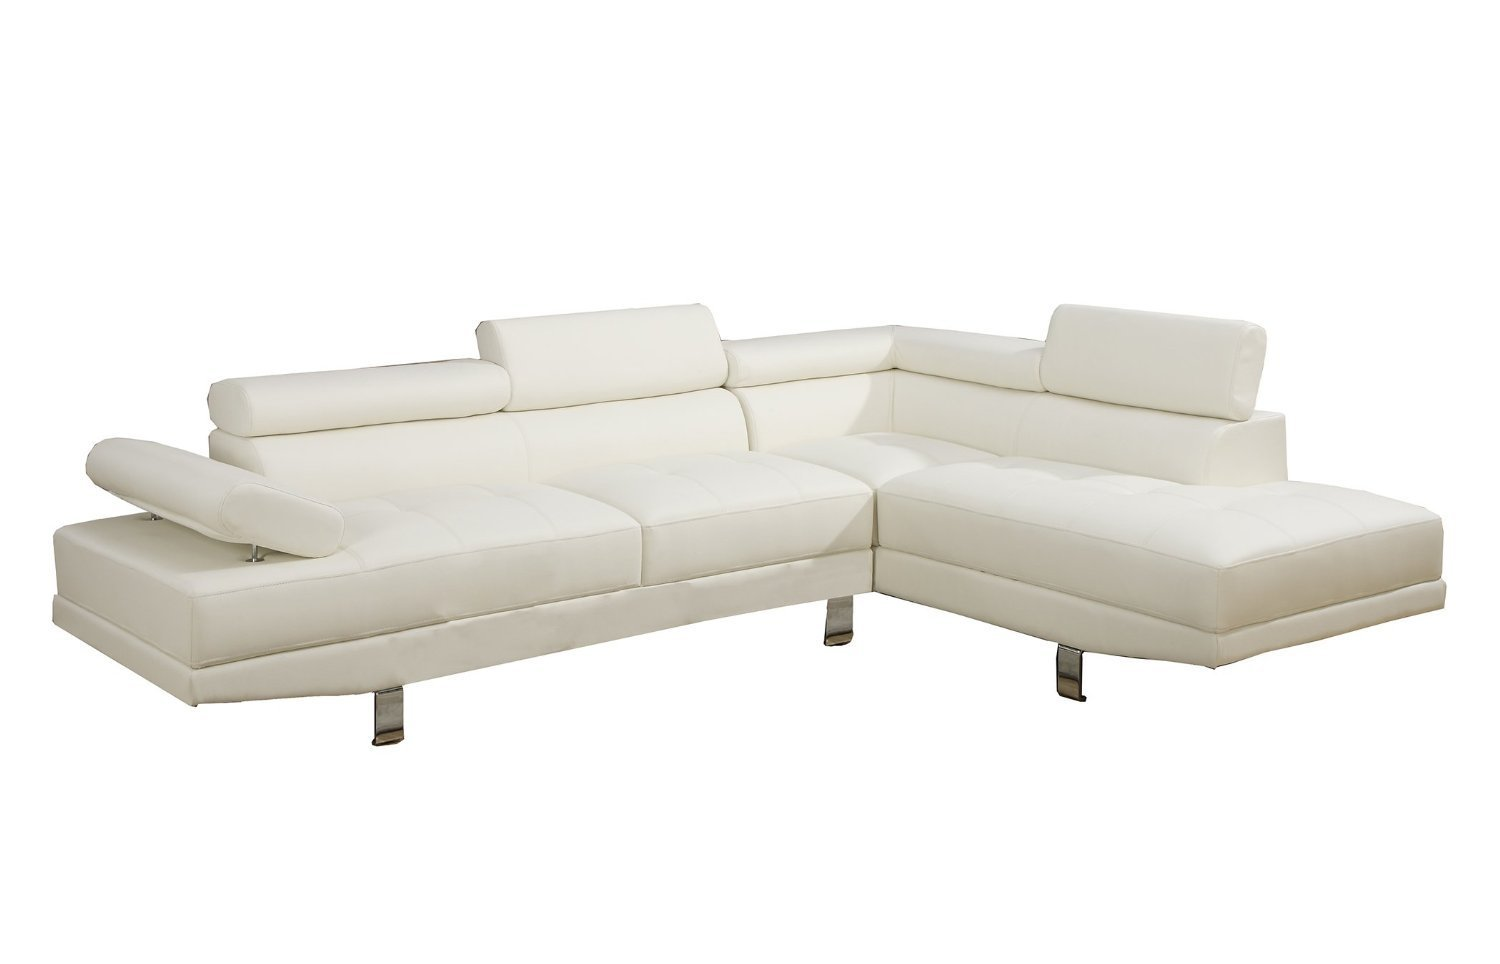 2 Piece Modern Contemporary Faux Leather Sectional Sofa